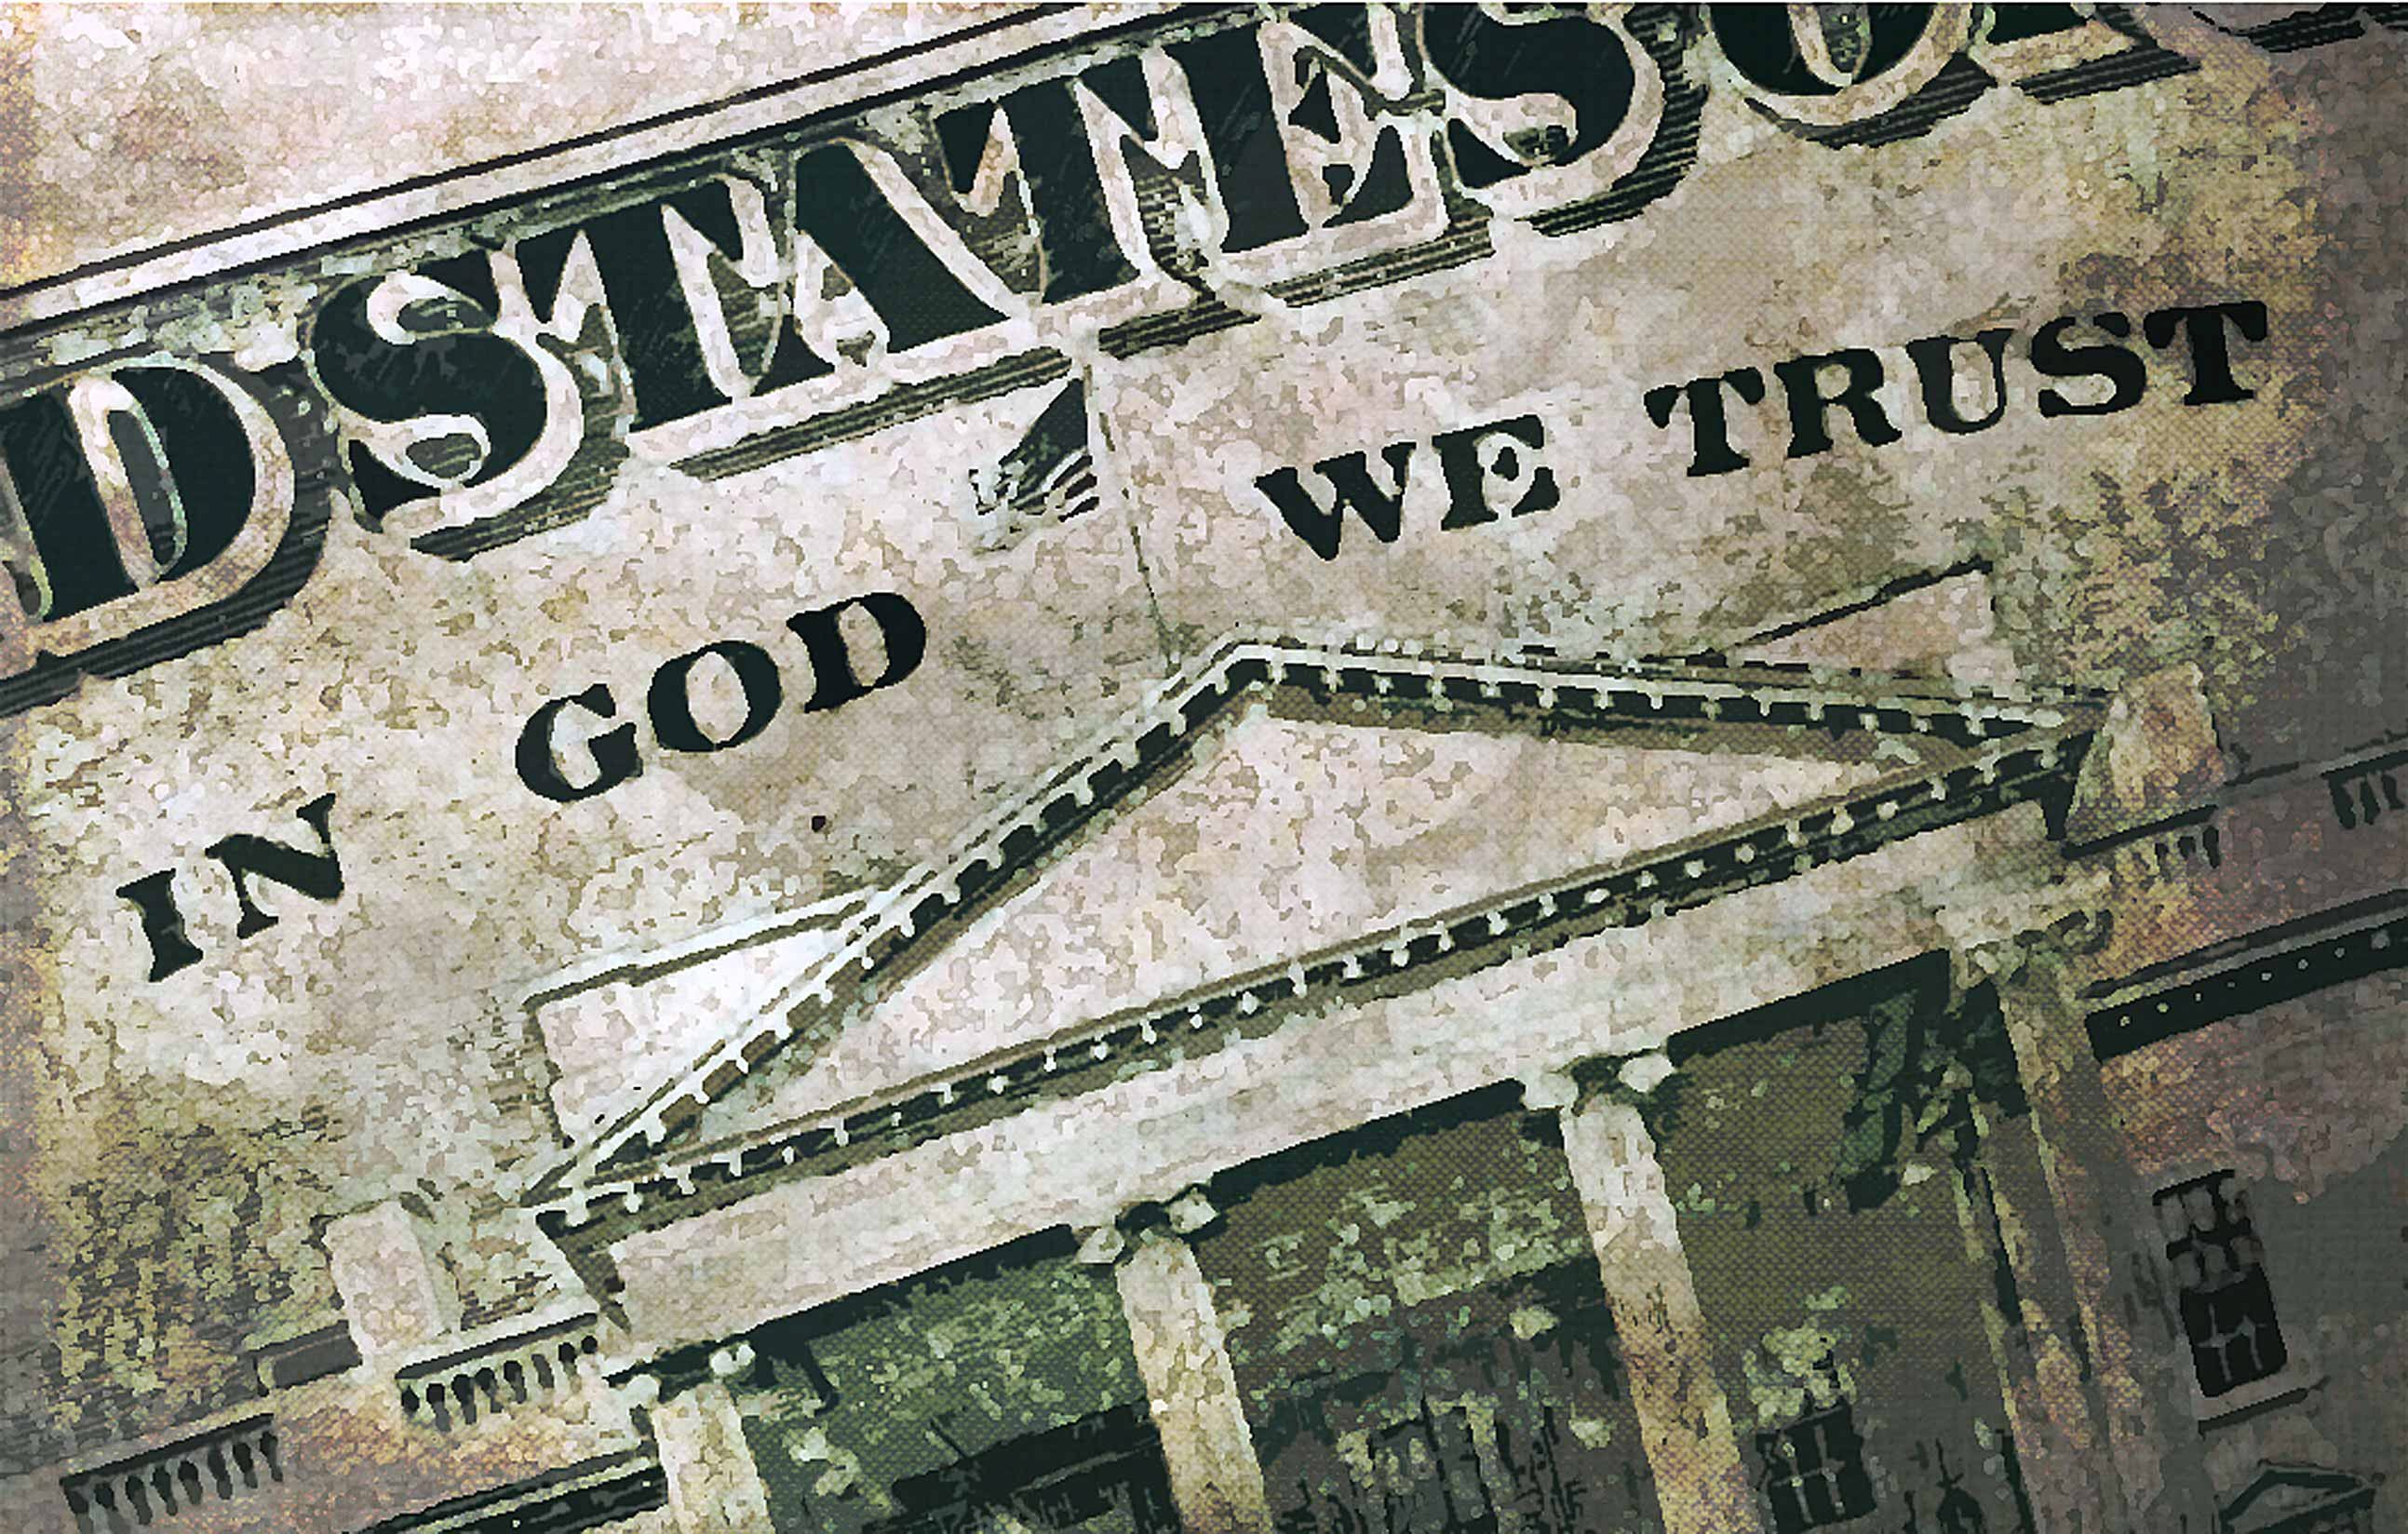 Tennessee public schools might be required to display In God We Trust motto for all to see